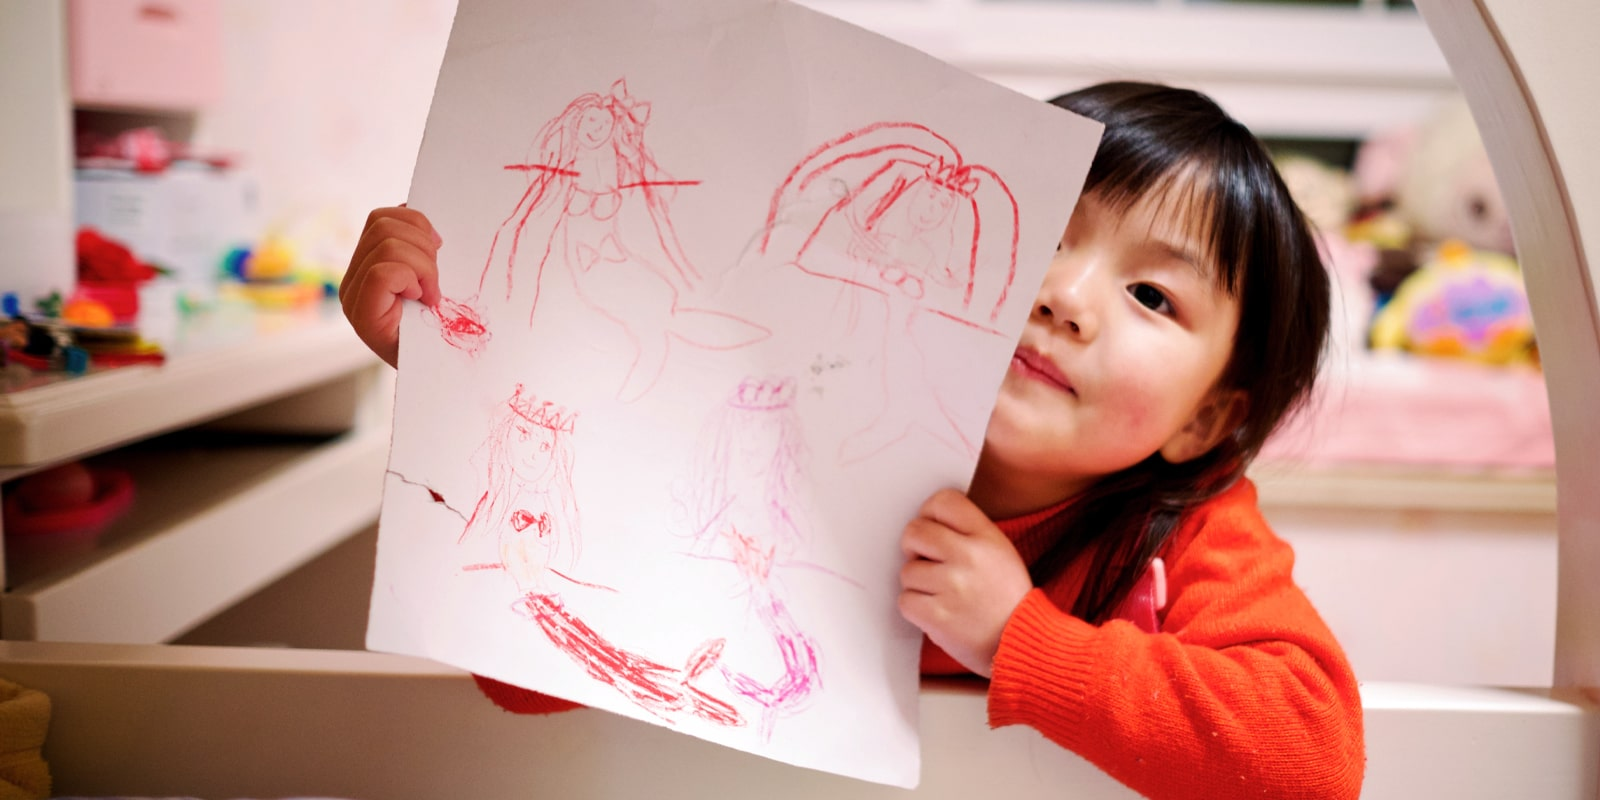 a young child shows off a drawing